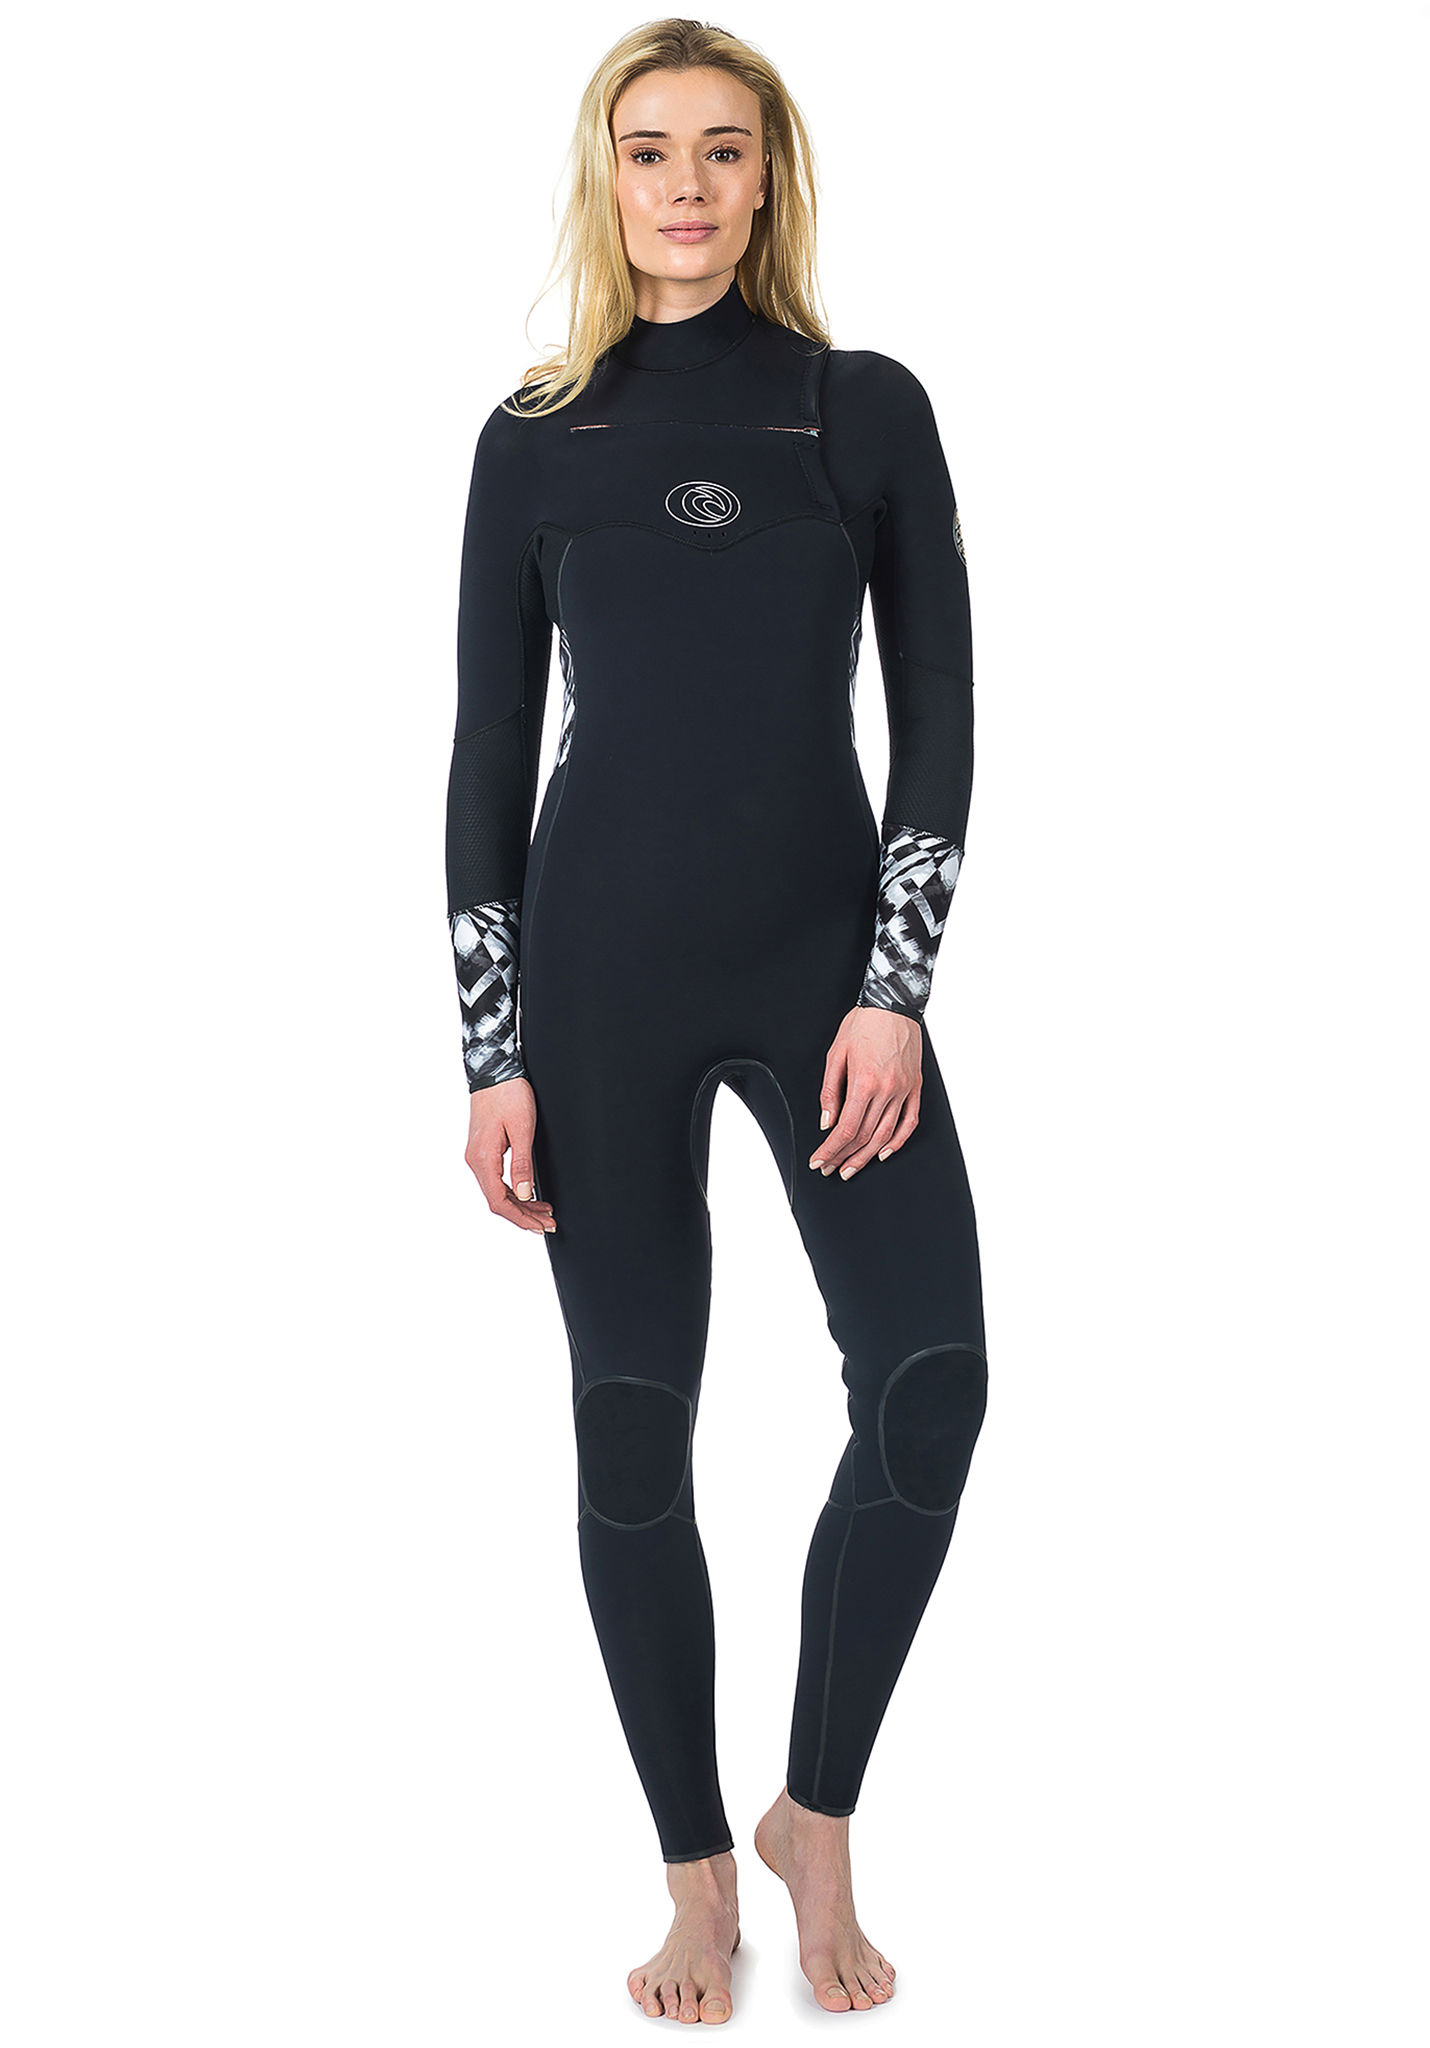 ... Rip Curl Flashbomb 5 3mm Chest Zip - Wetsuit for Women - Black - Planet  Sports  Flashbomb 2 ... e954057a0